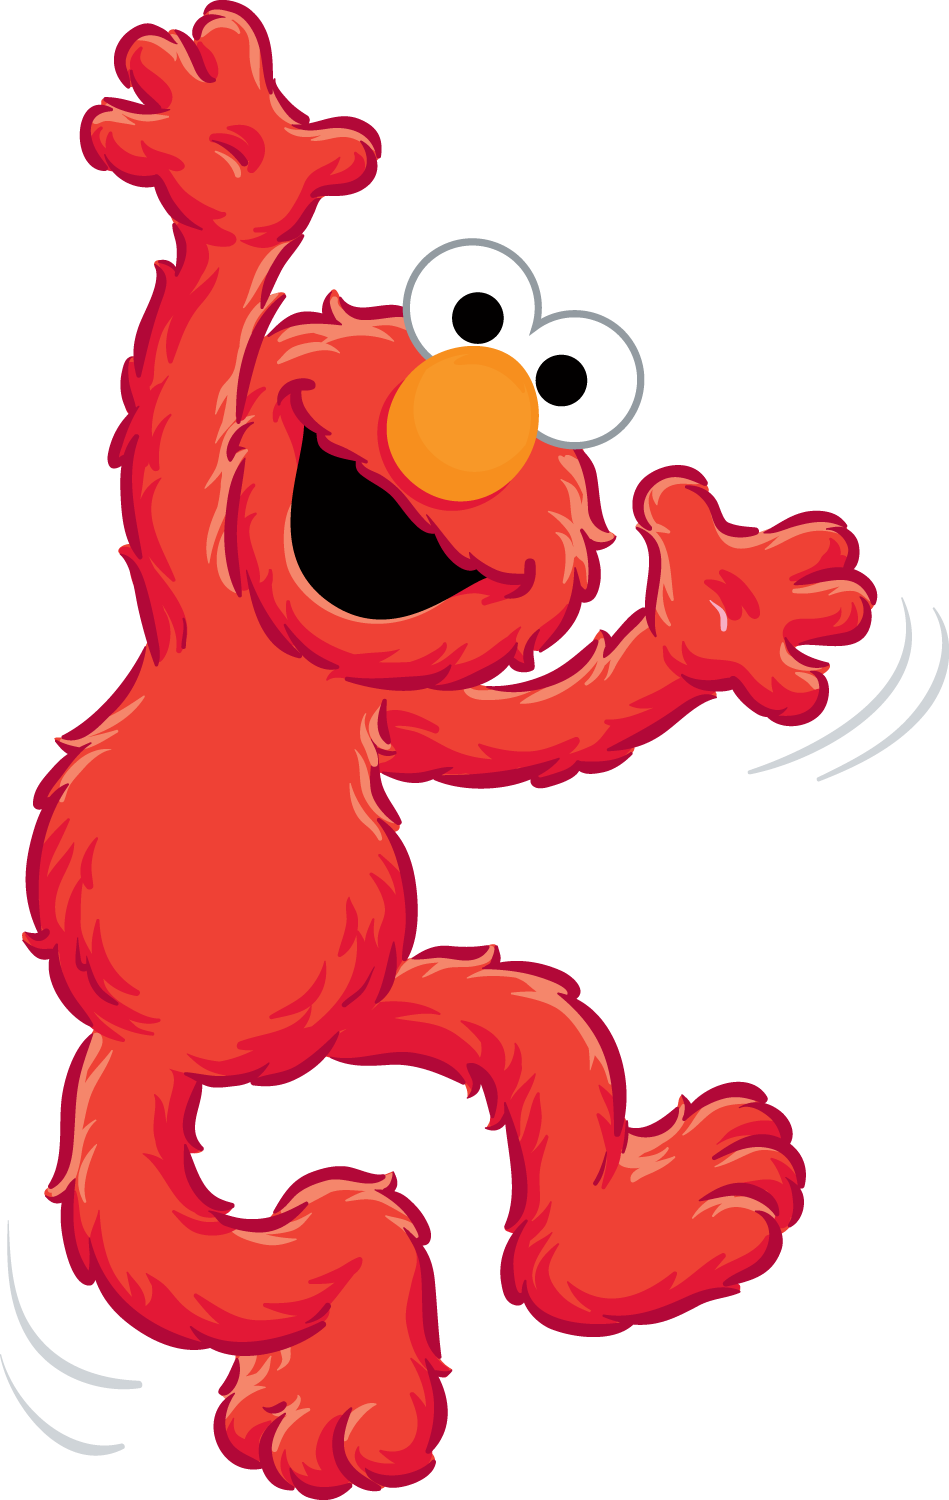 8 images elmo. Free cliparts in 2019.